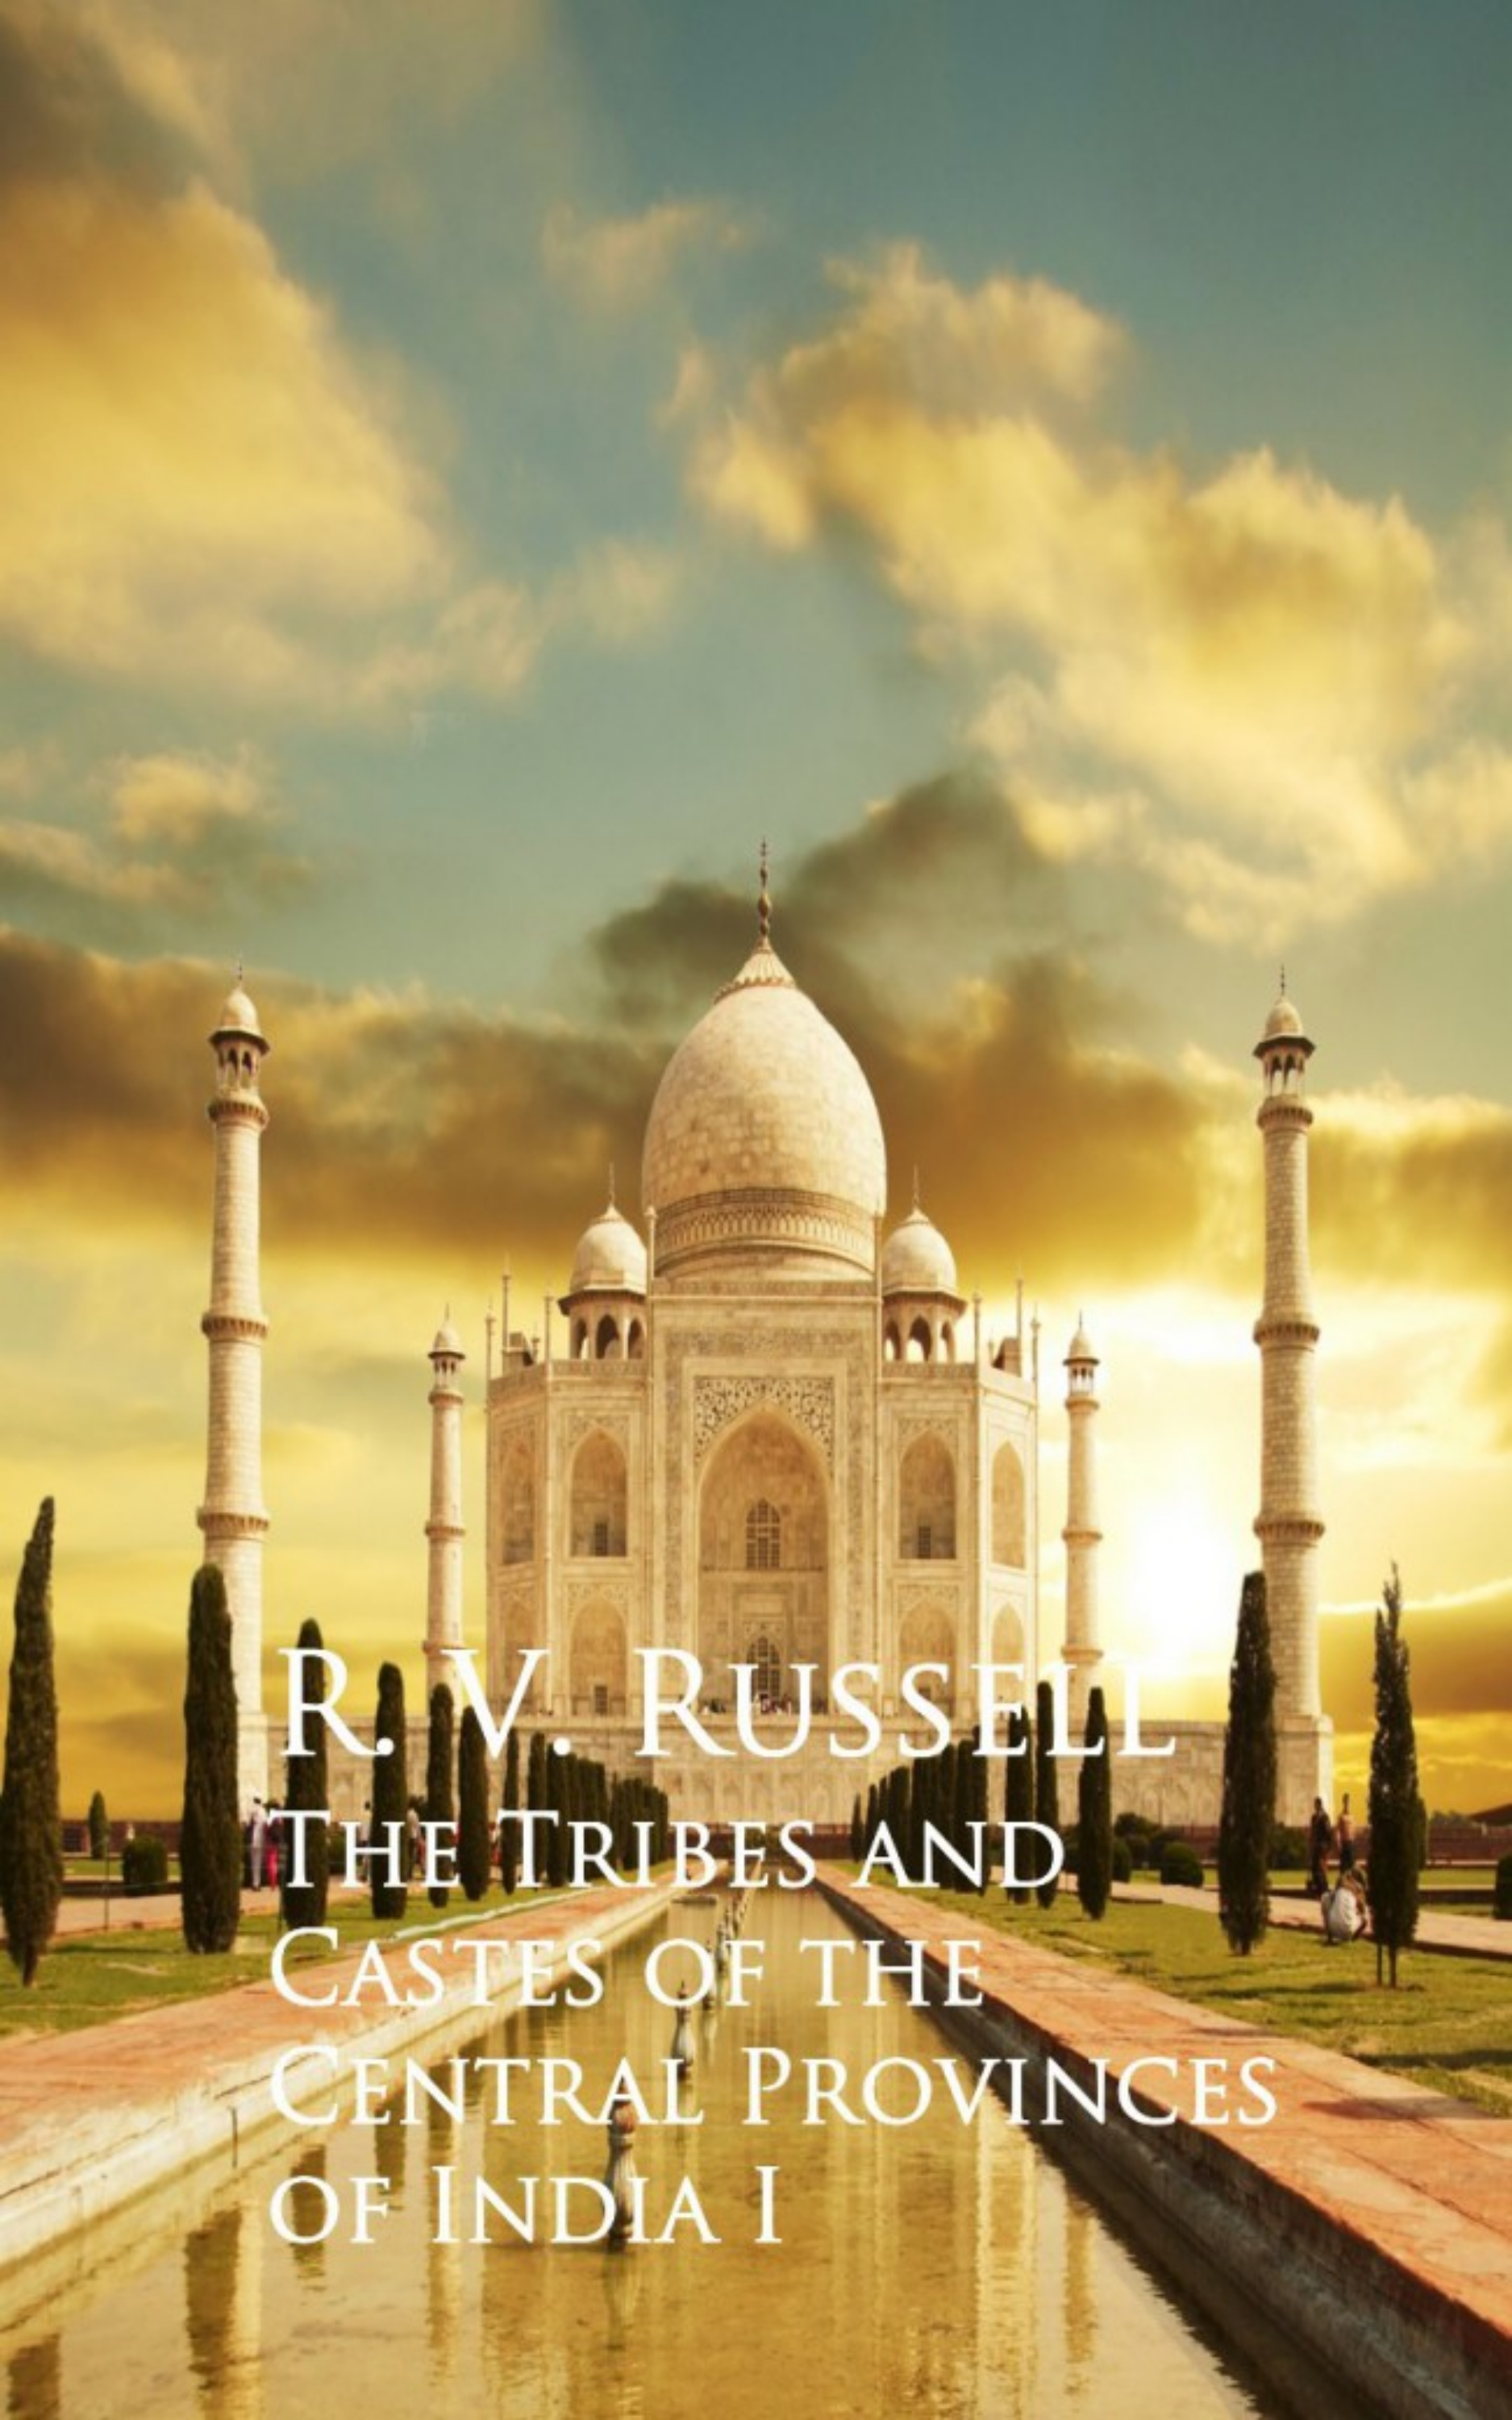 R. V. Russell The Tribes and Castes of the Central Provinces of India I john reed swanton indian tribes of the lower mississippi valley and adjacent coast of the gulf of mexico